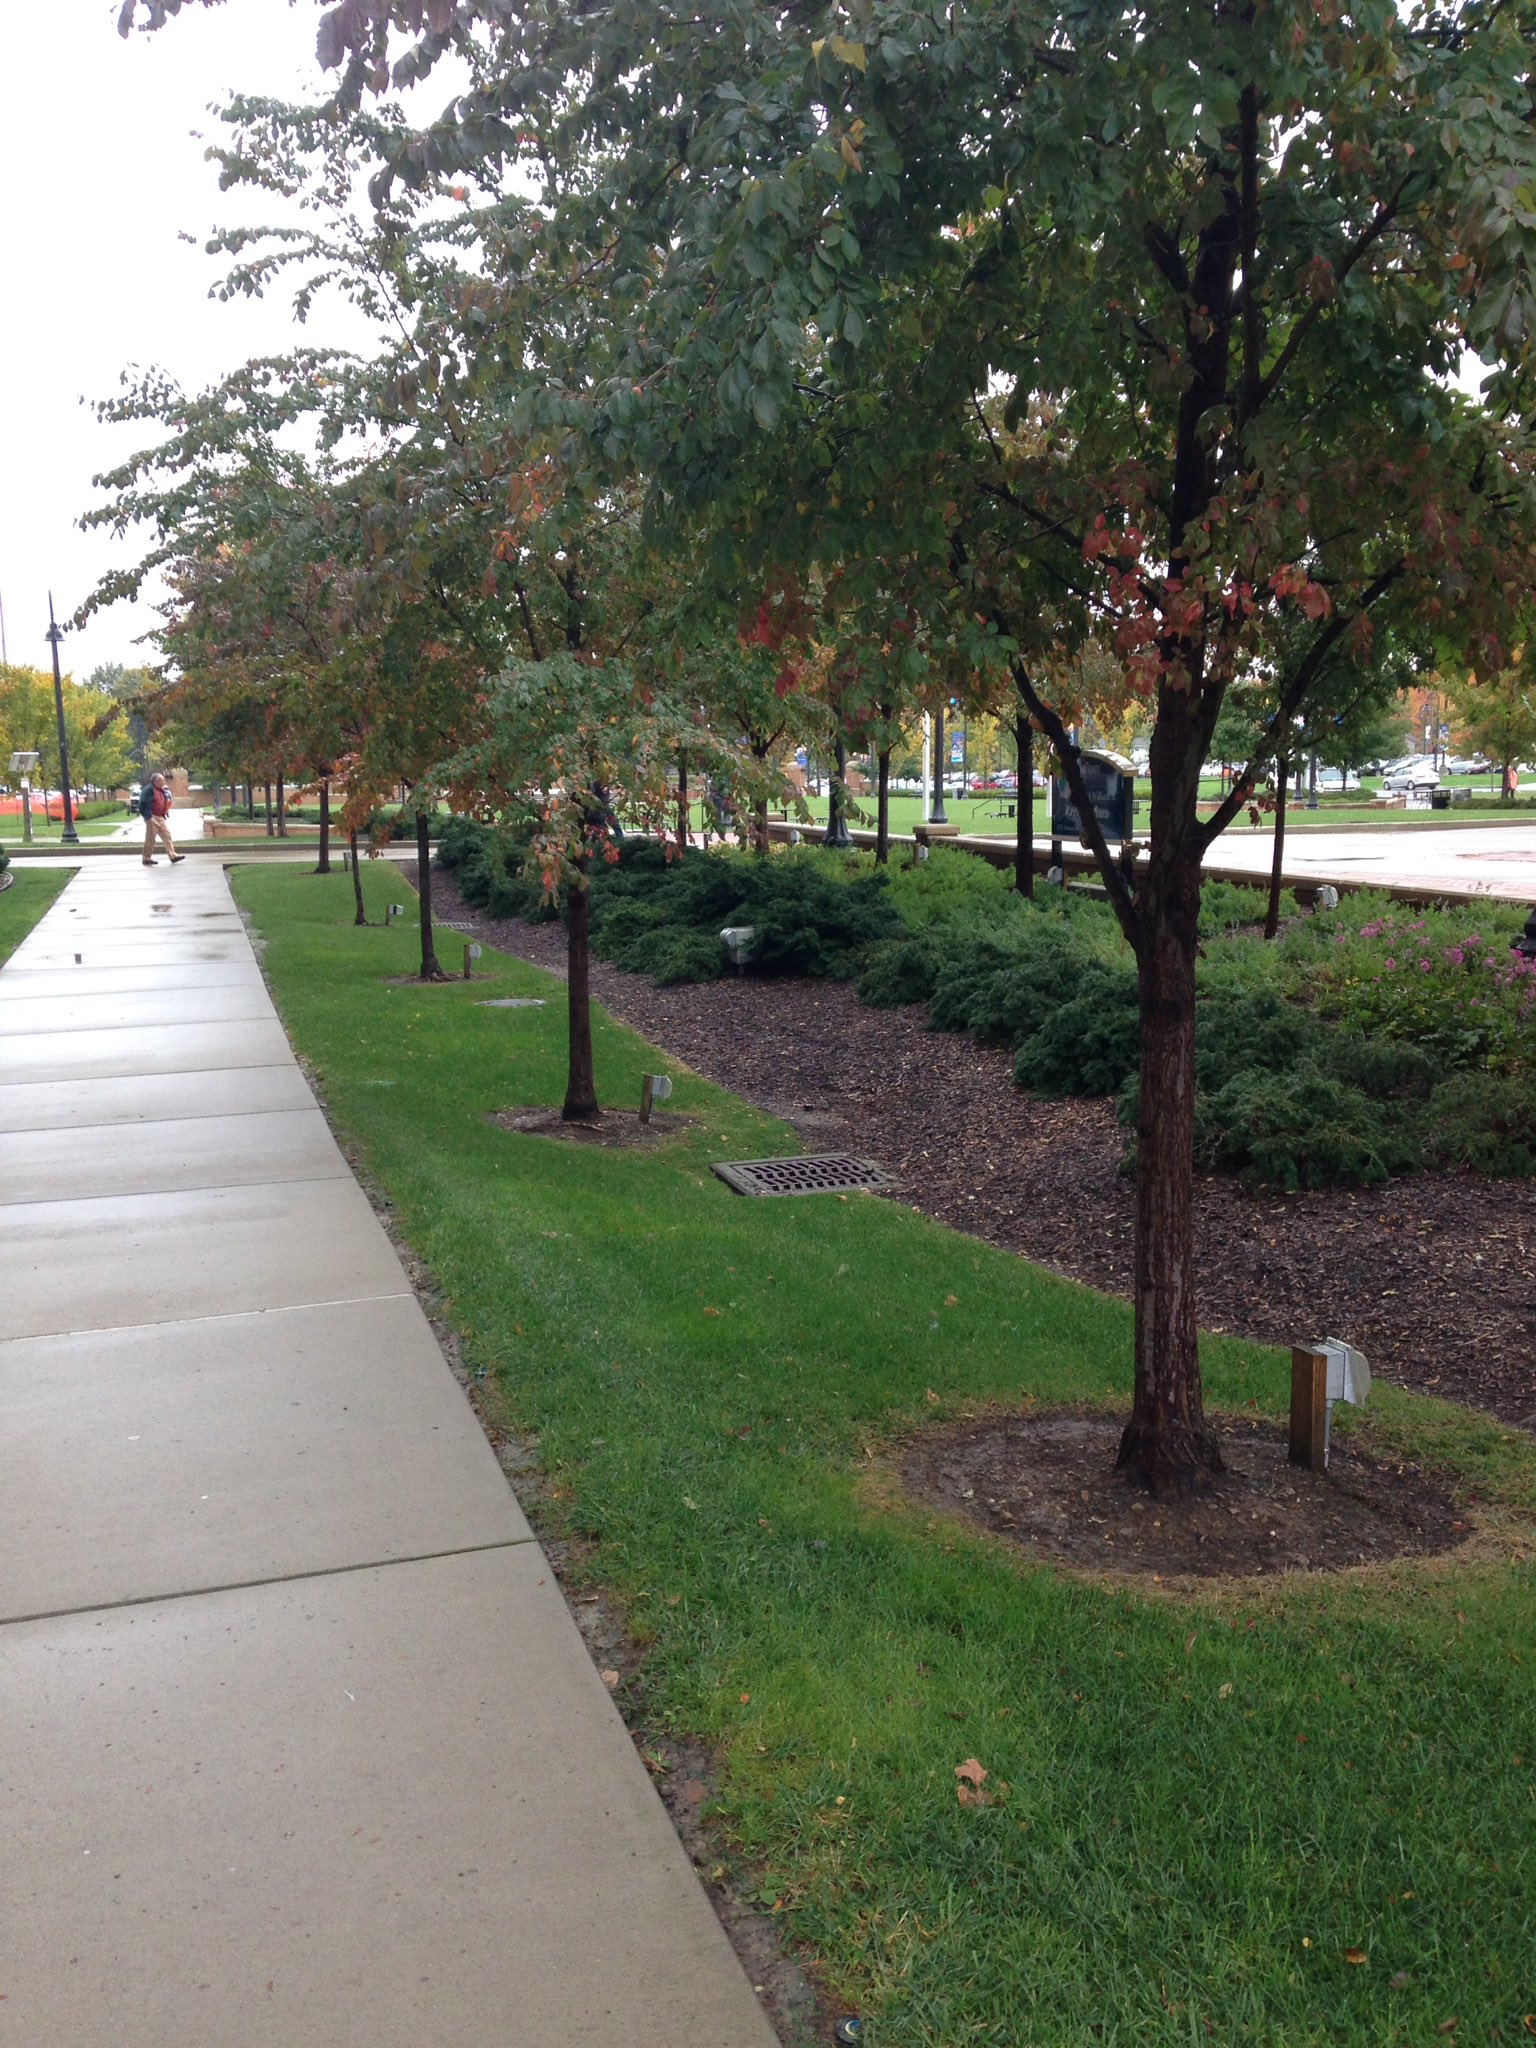 Can you #spottheSCM in this photo? Slowing #stormwater on @kentstate campus. https://t.co/iGHC4dHGIT